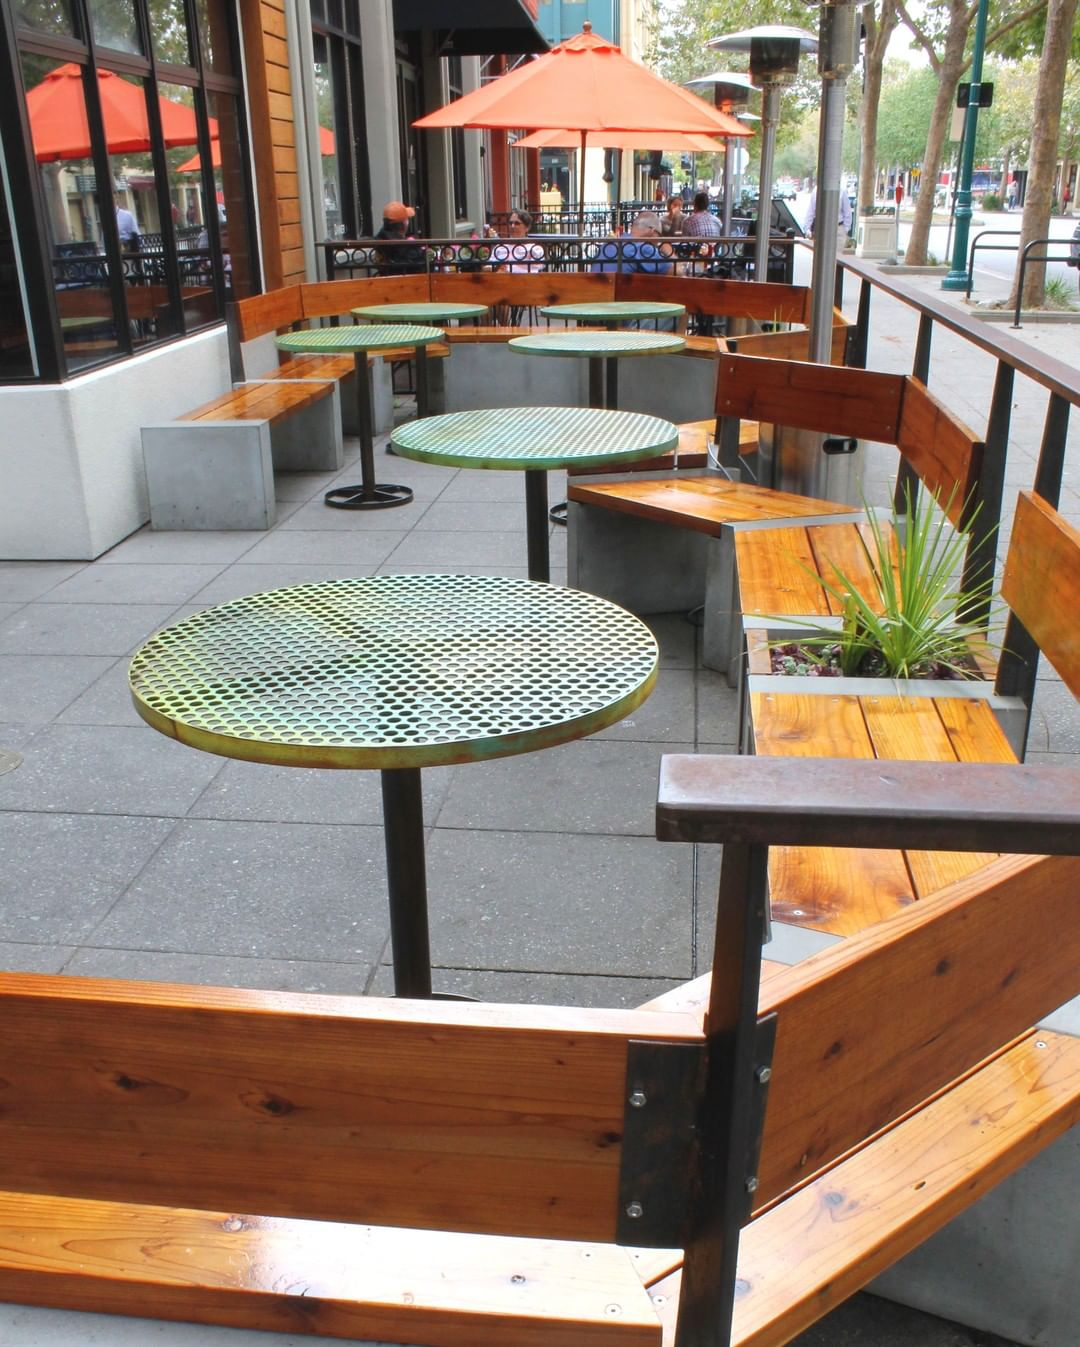 Perforated Metal tables at The Creek Eatery in Santa Cruz, CA